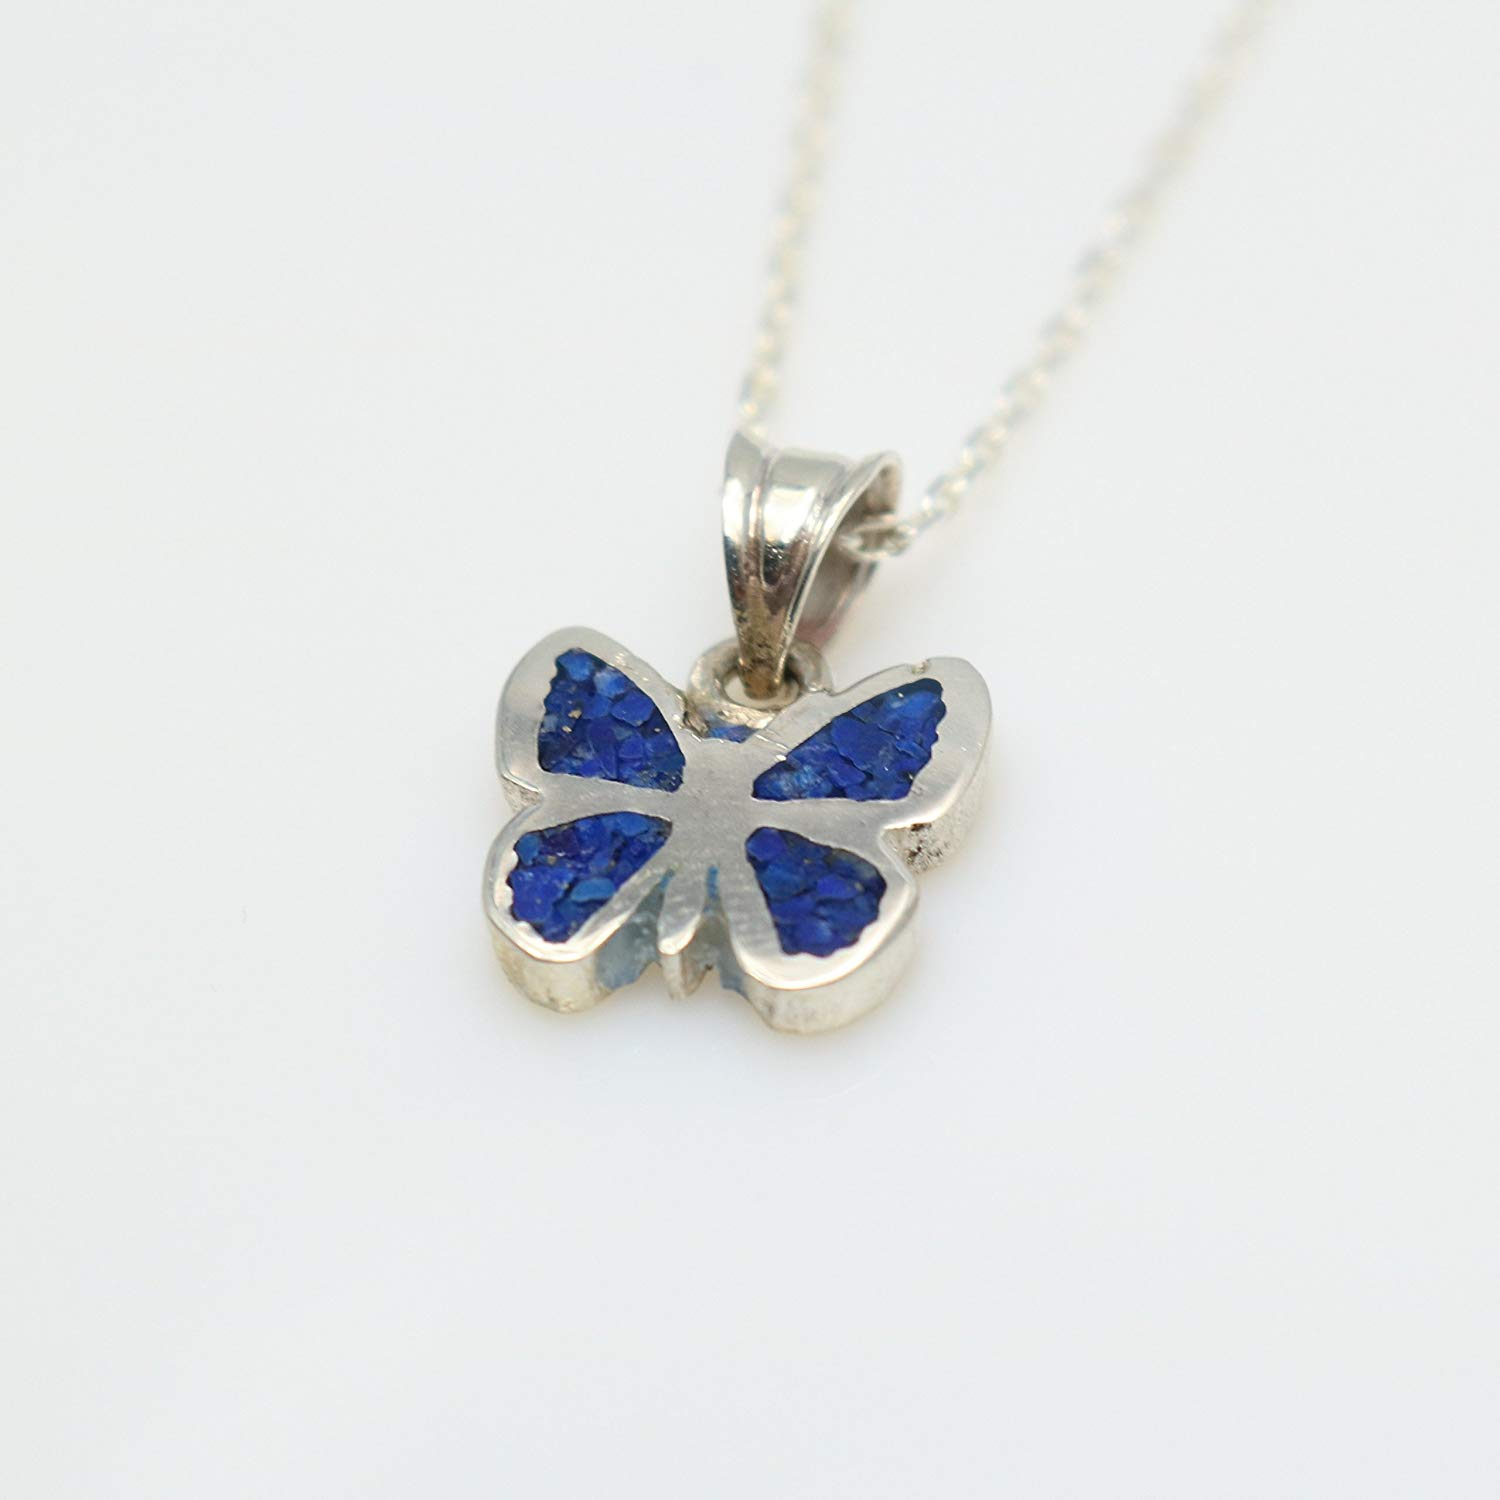 Butterfly Lapis Lazuli Gemstone Mosaic Sterling Silver Necklace 16.1'' to 17.7 inches, Adjustable Chain, Semi Precious Stone